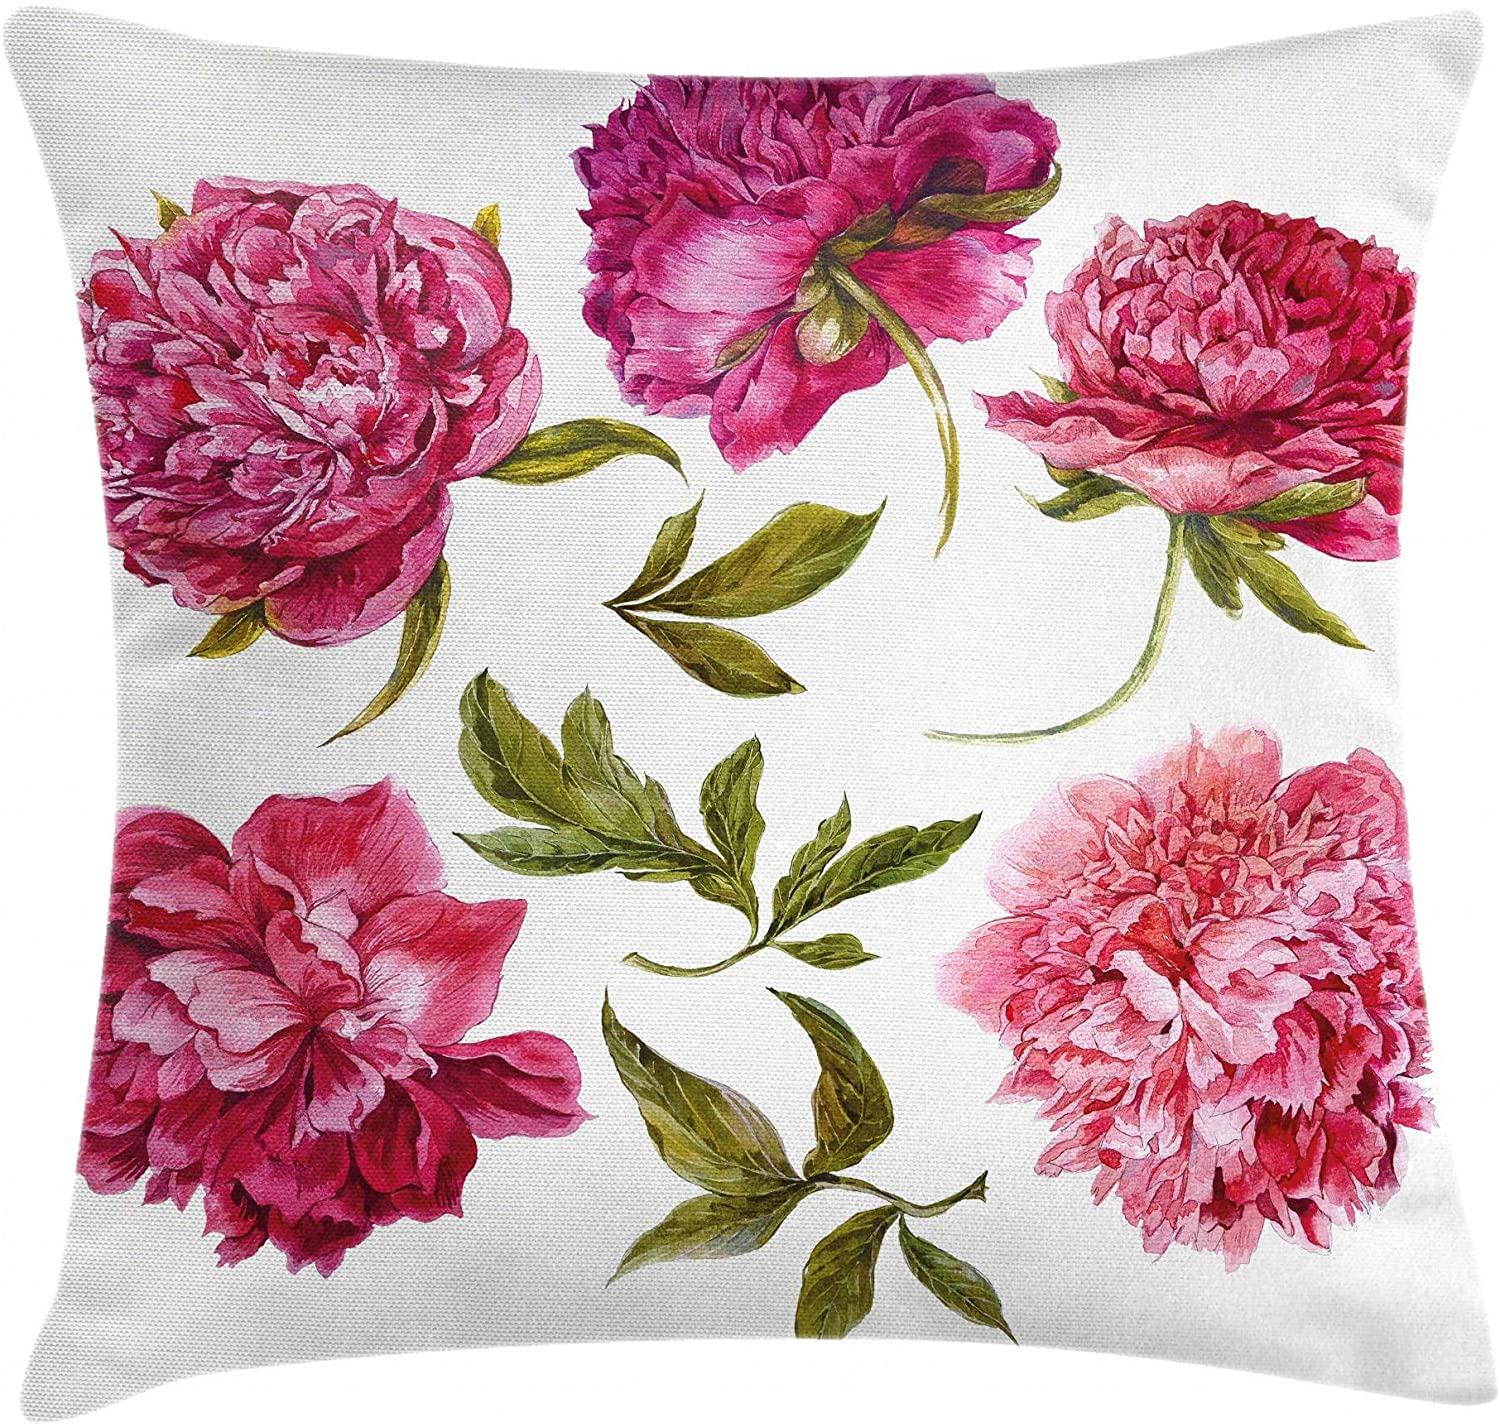 Ambesonne Floral Throw Pillow Cushion Cover, Spring Buds in Vivid Tones Watercolor Peony Bouquet Artwork, Decorative Square Accent Pillow Case, 24 X 24, Olive Green